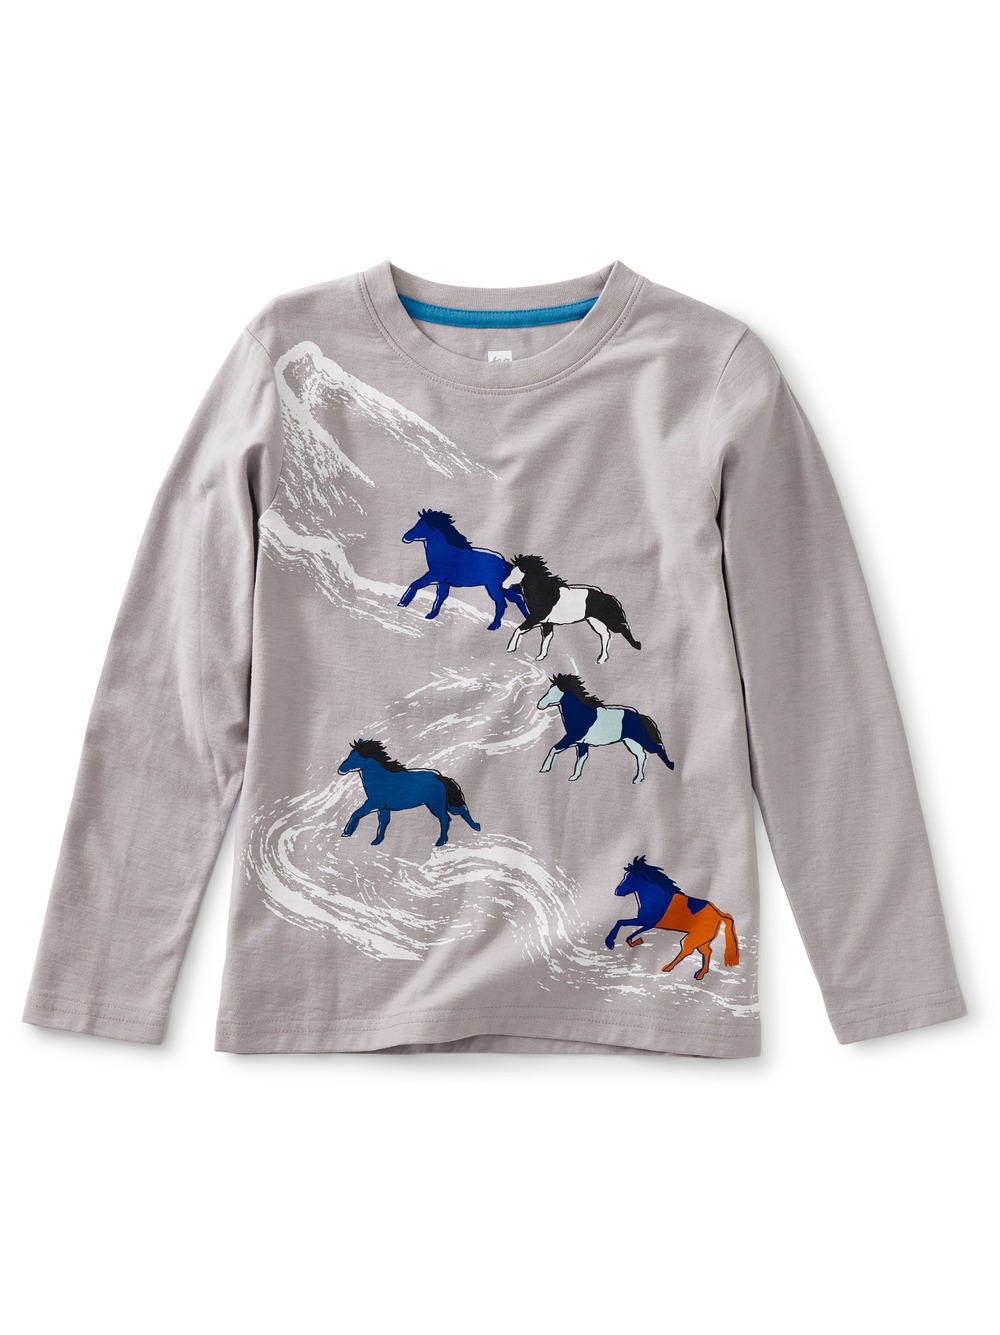 Giddy Up Graphic Tee